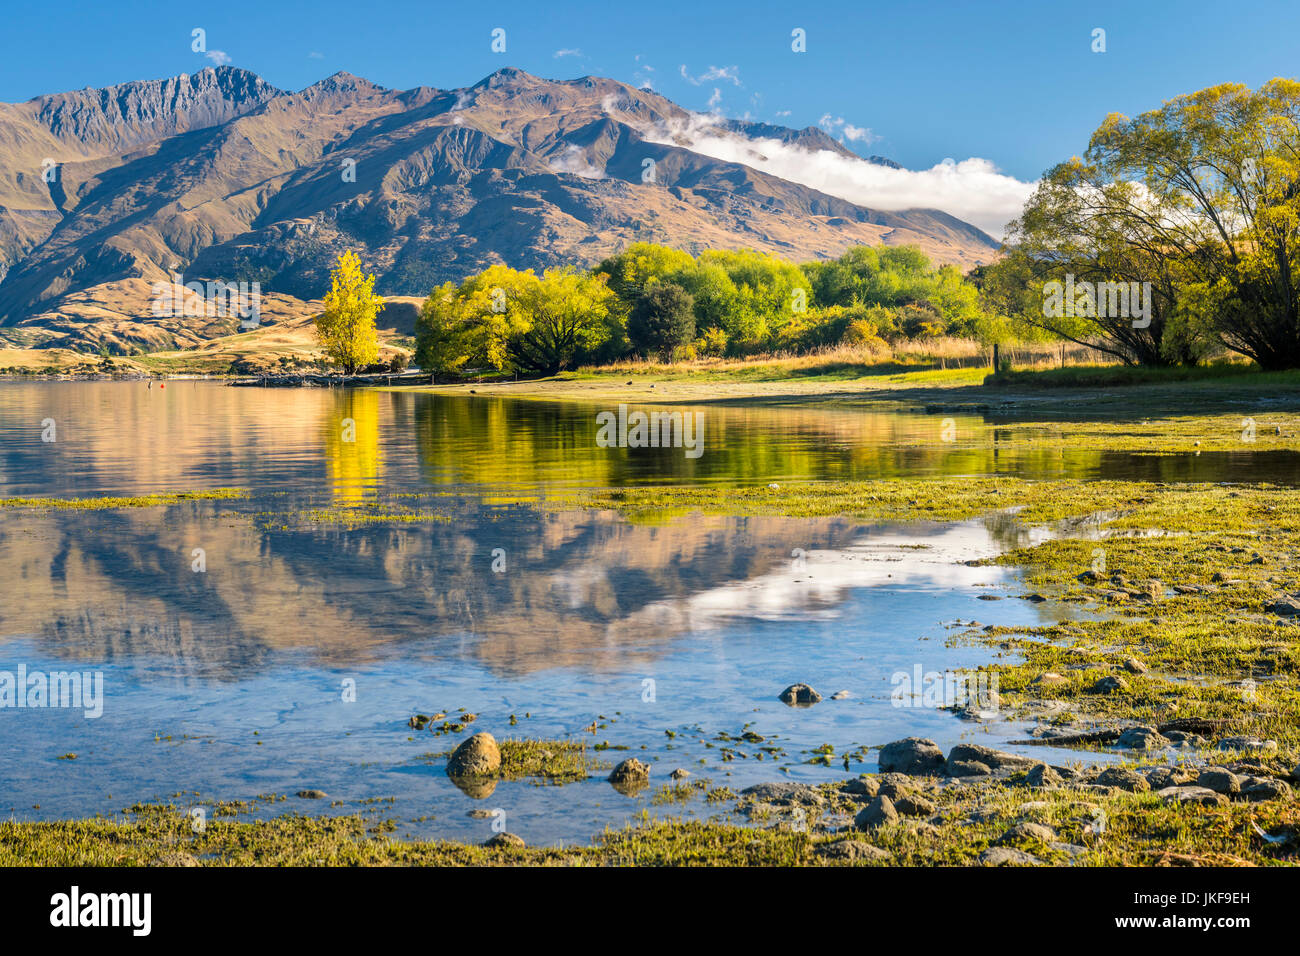 New Zealand, South Island, Gledhu Bay at Lake Wanaka - Stock Image